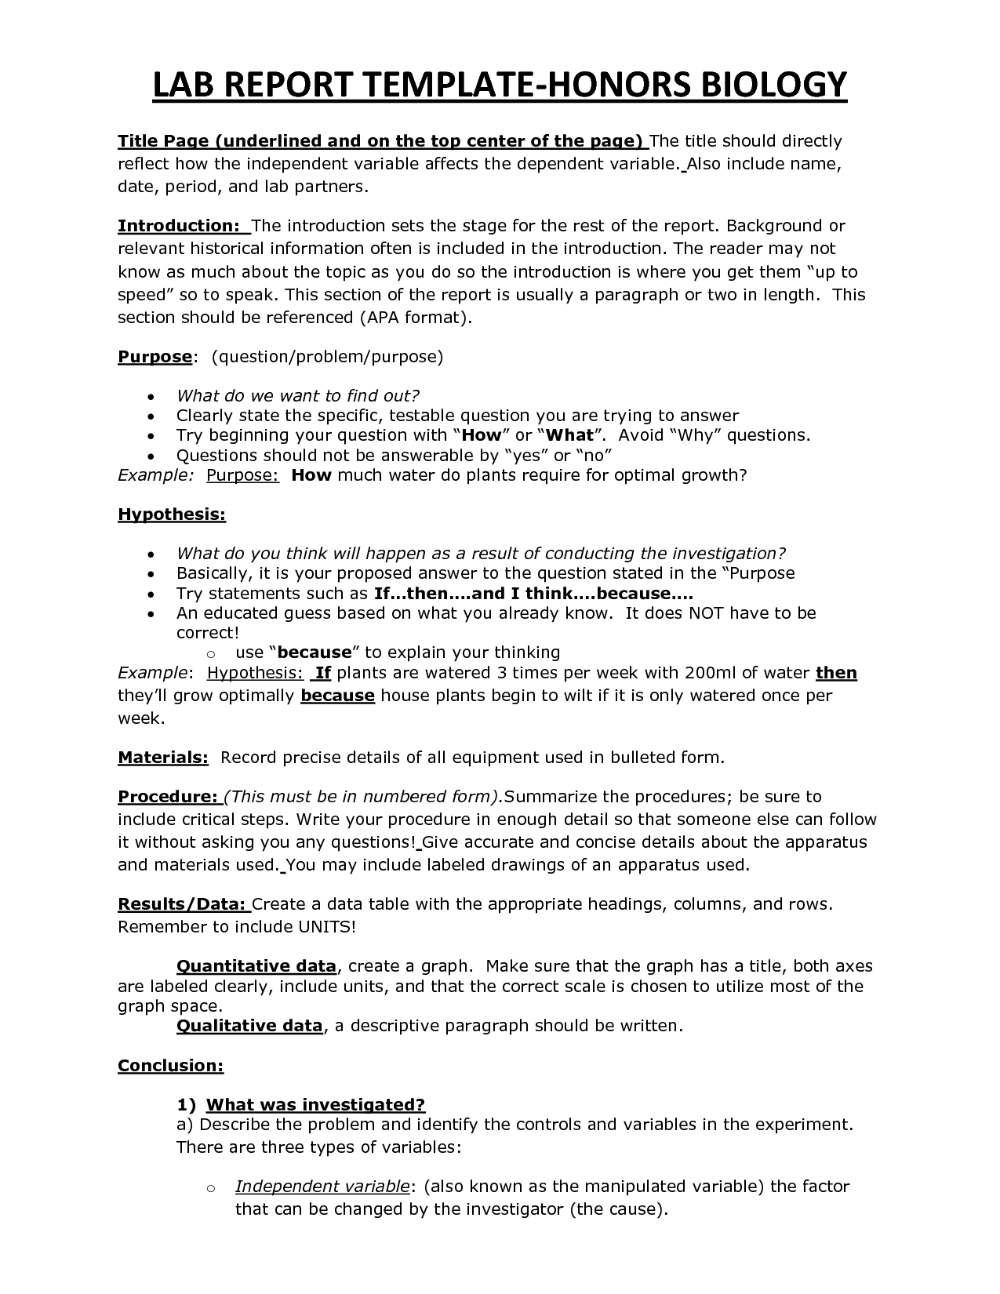 Example Of A Lab Report For Biology - How to Write a Lab Report